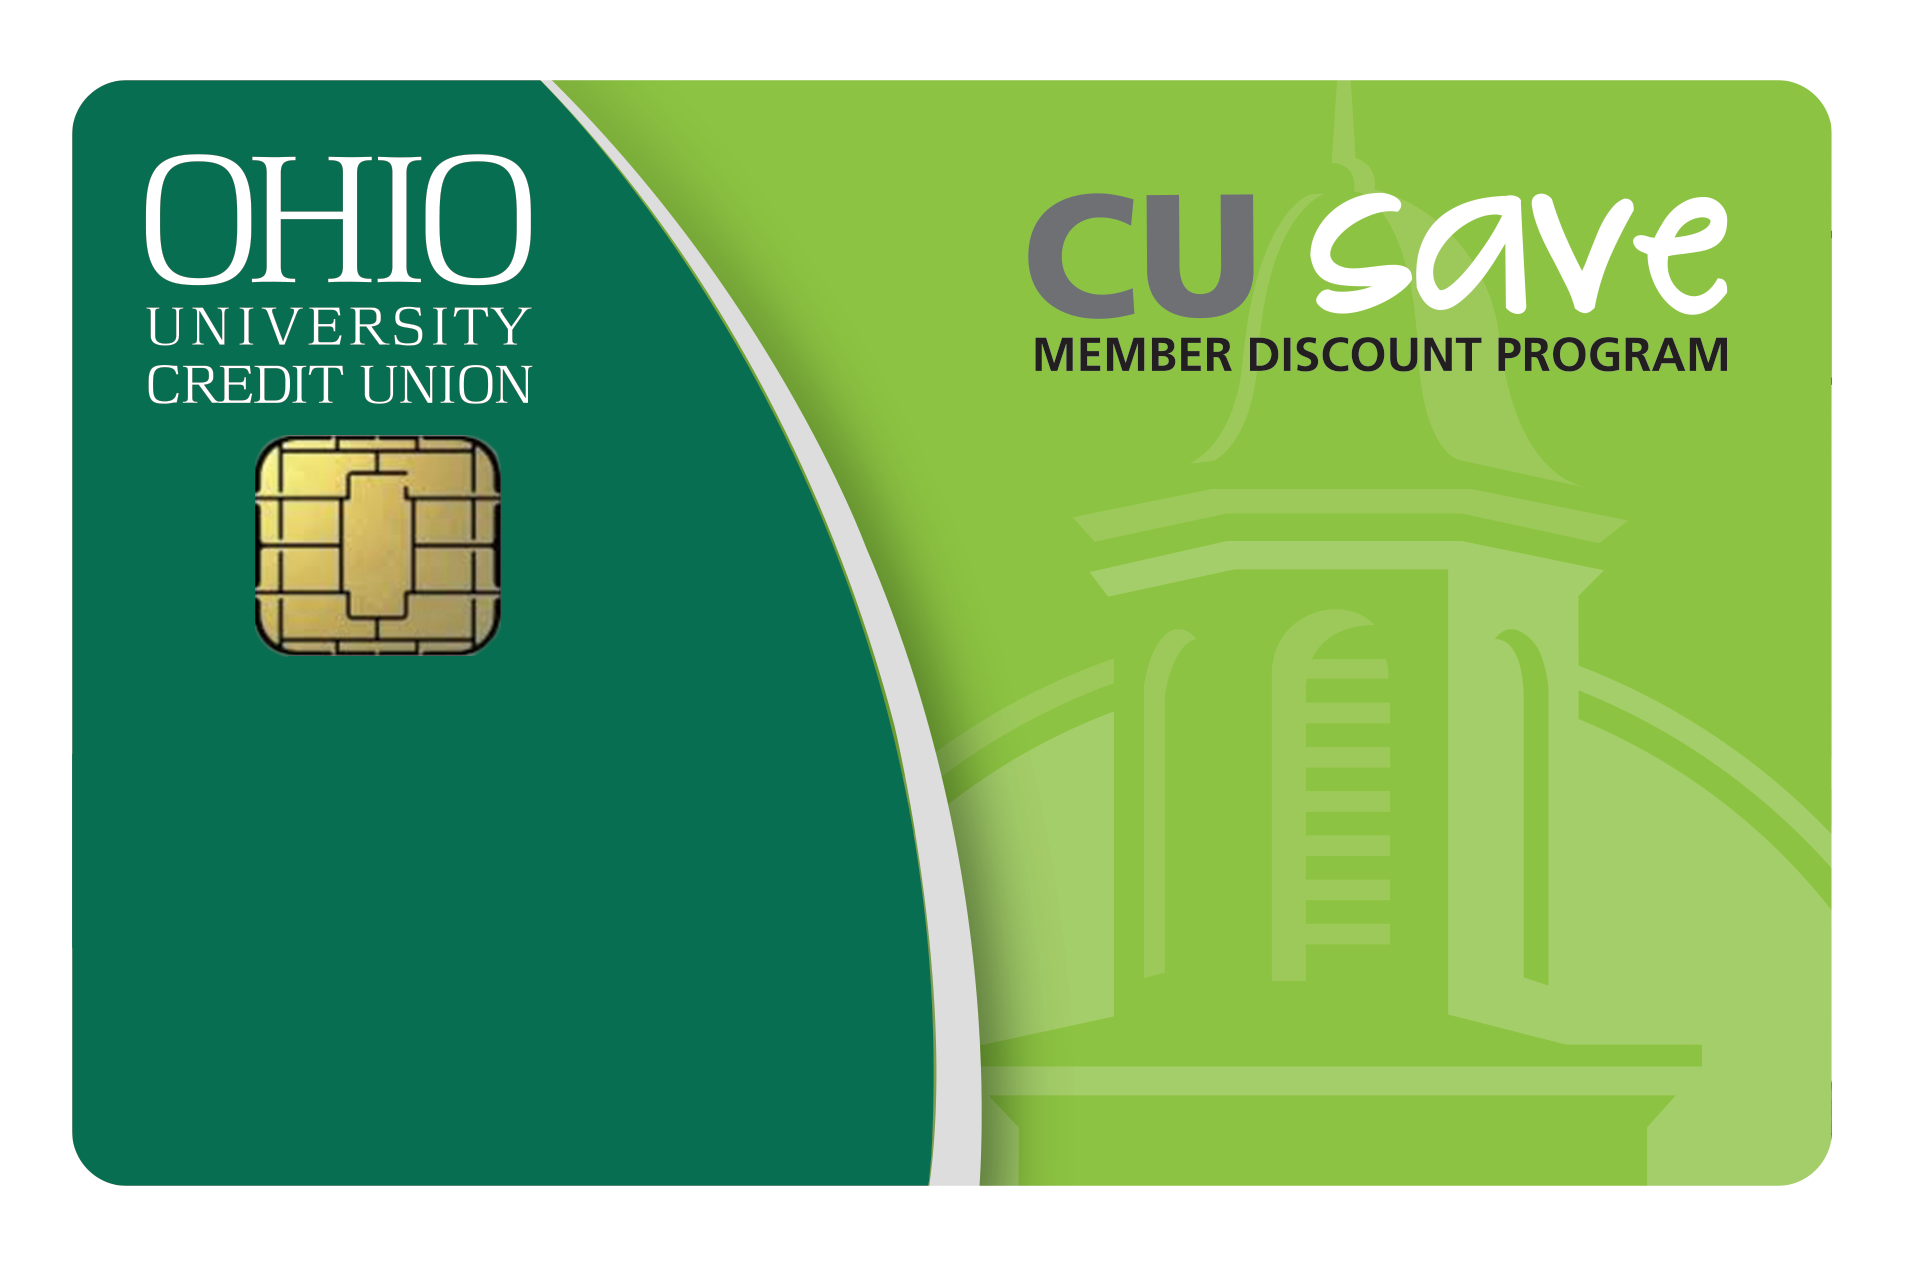 CU Save debit card